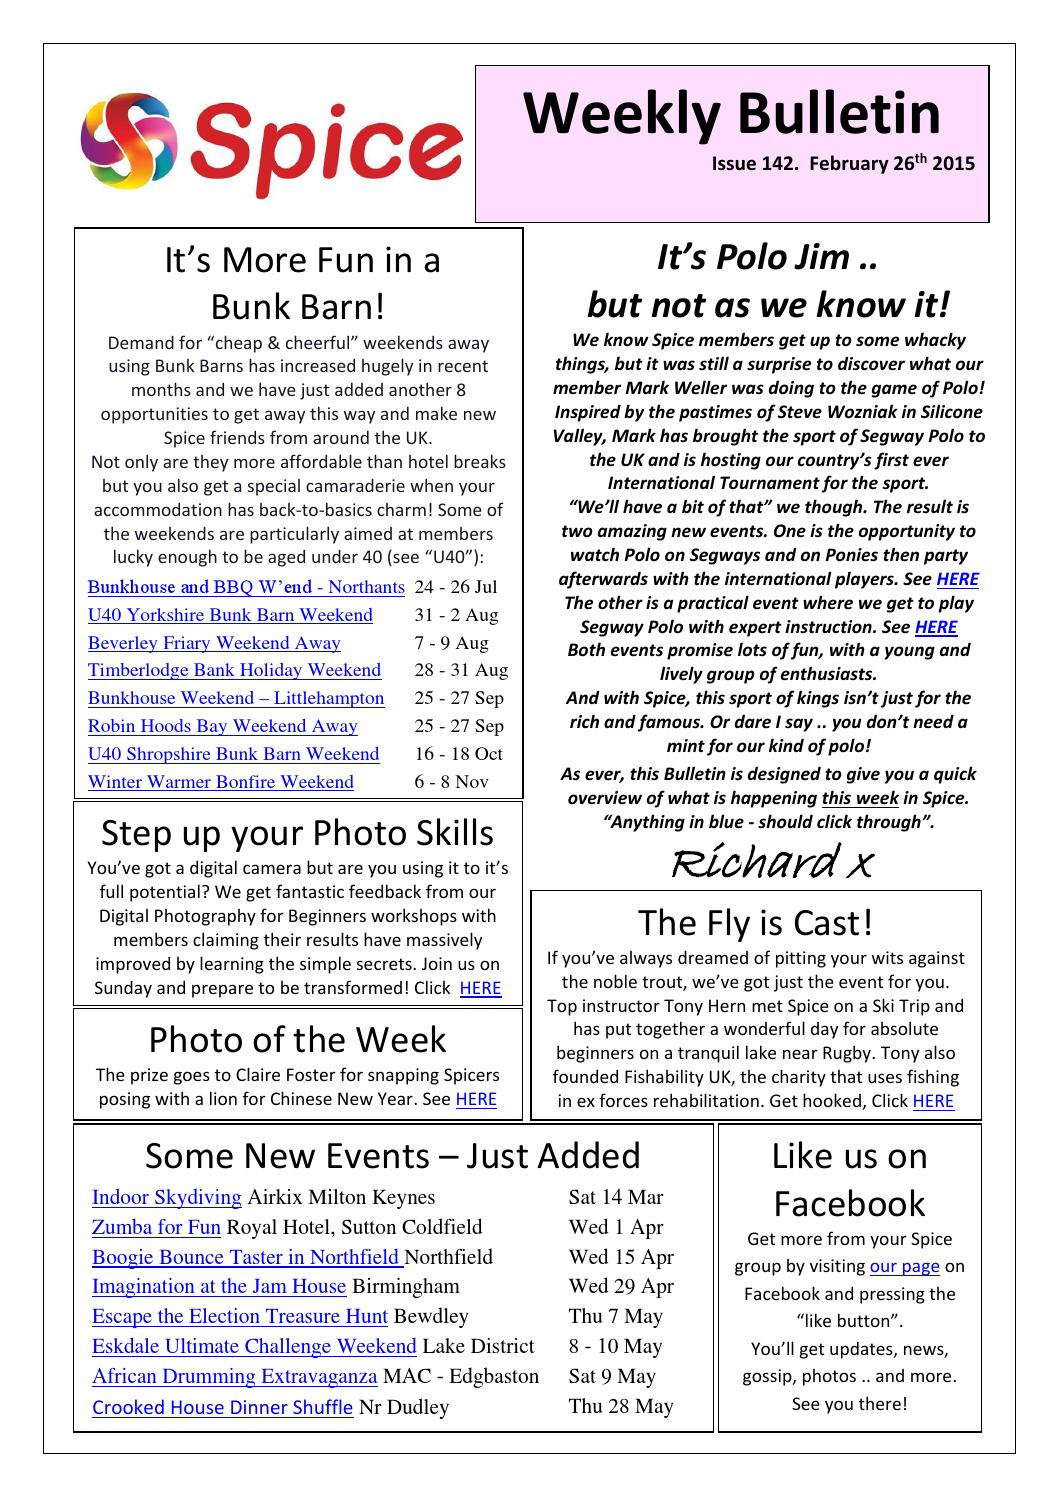 Spice West Mids Weekly Bulletin 26 February 2015 by Richard